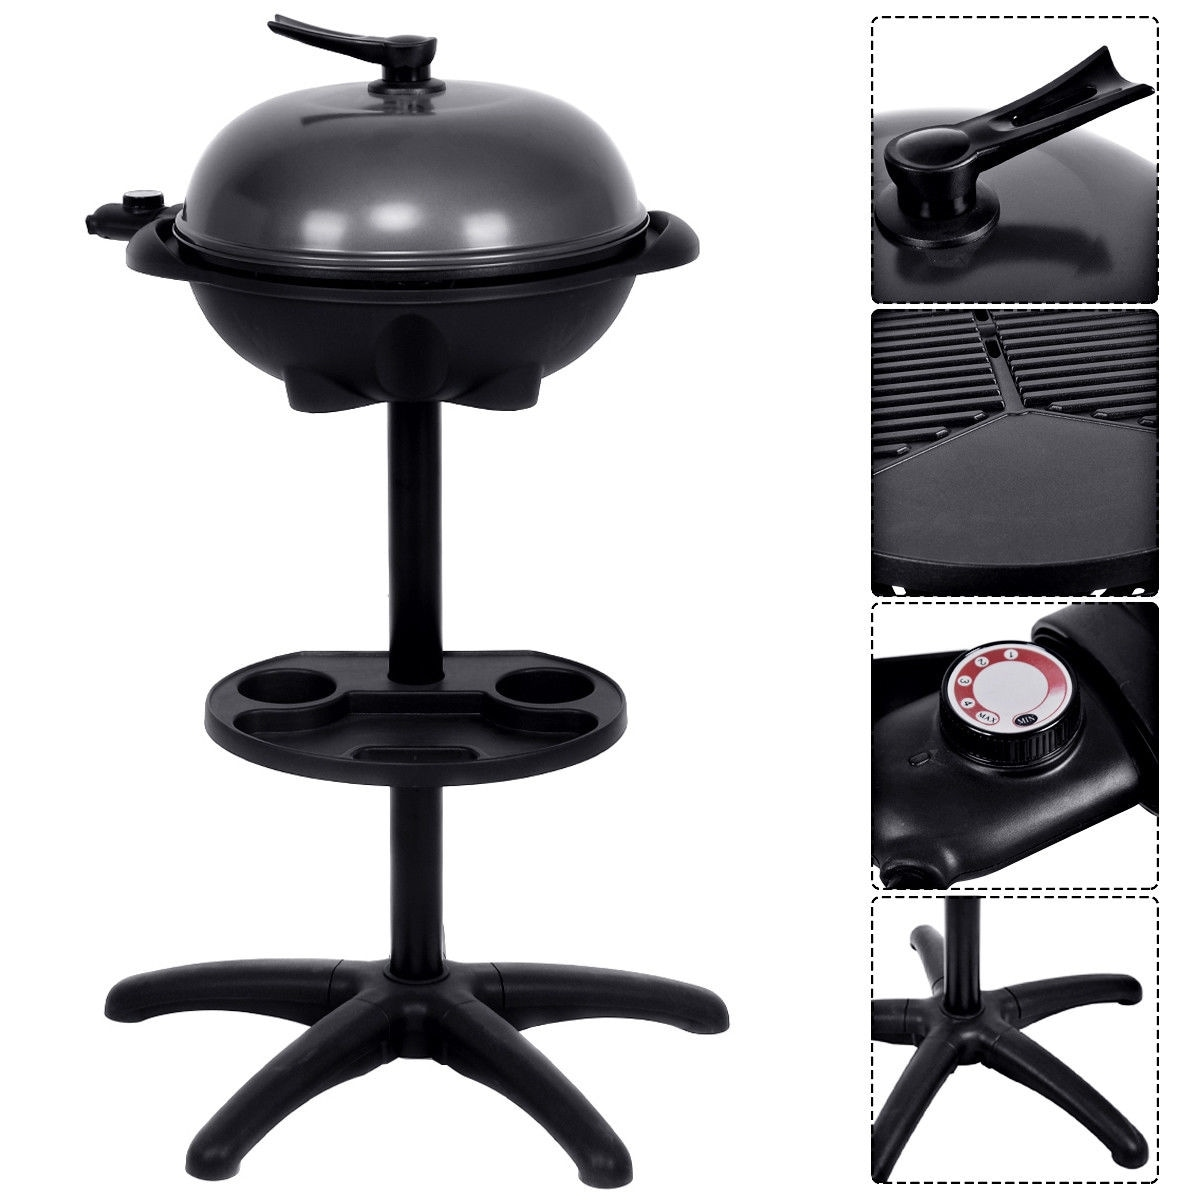 Grill Camping Costway Electric Bbq Grill 1350w Non Stick 4 Temperature Setting Outdoor Garden Camping As Pic